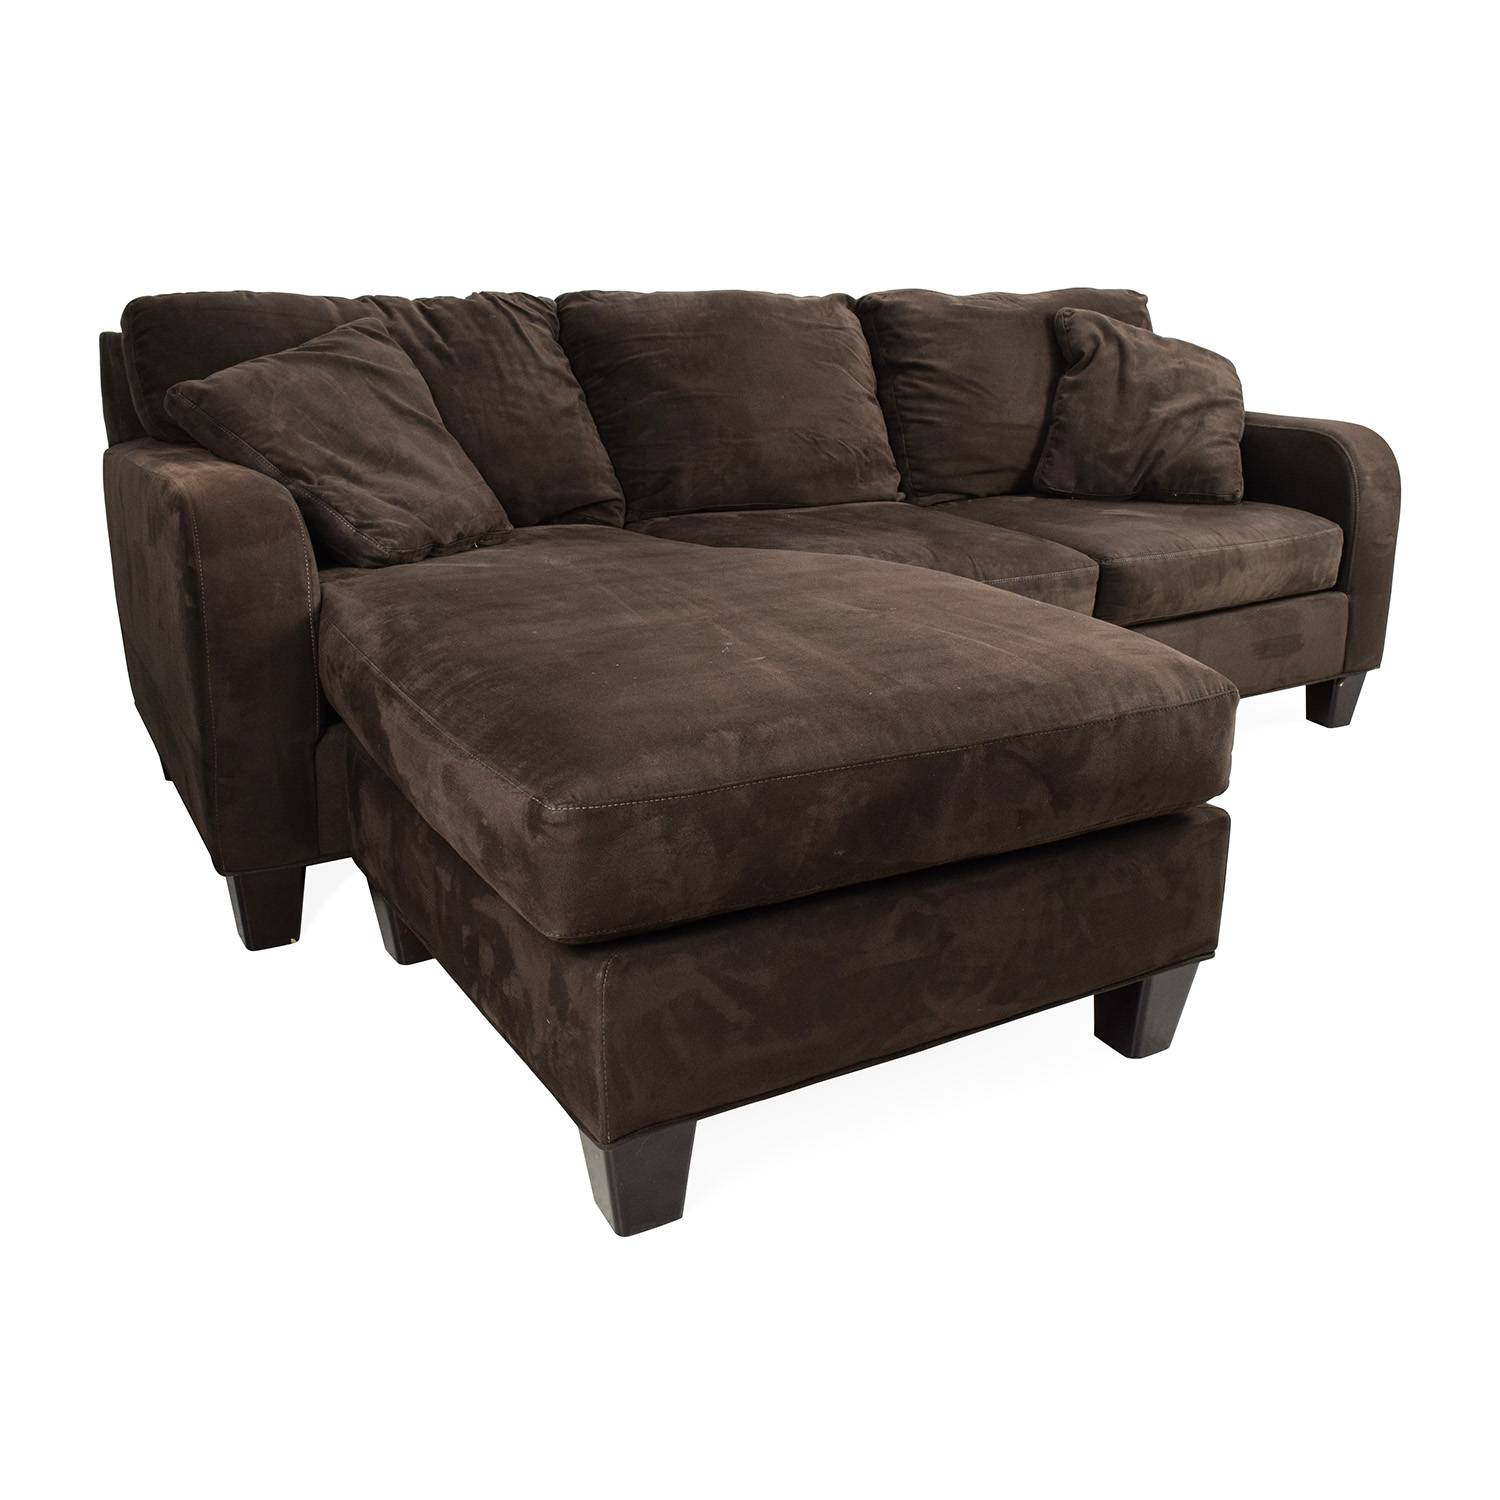 70% Off   Cindy Crawford Home Cindy Crawford Bailey Microfiber Regarding Cindy Crawford Microfiber Sofas (Photo 1 of 15)